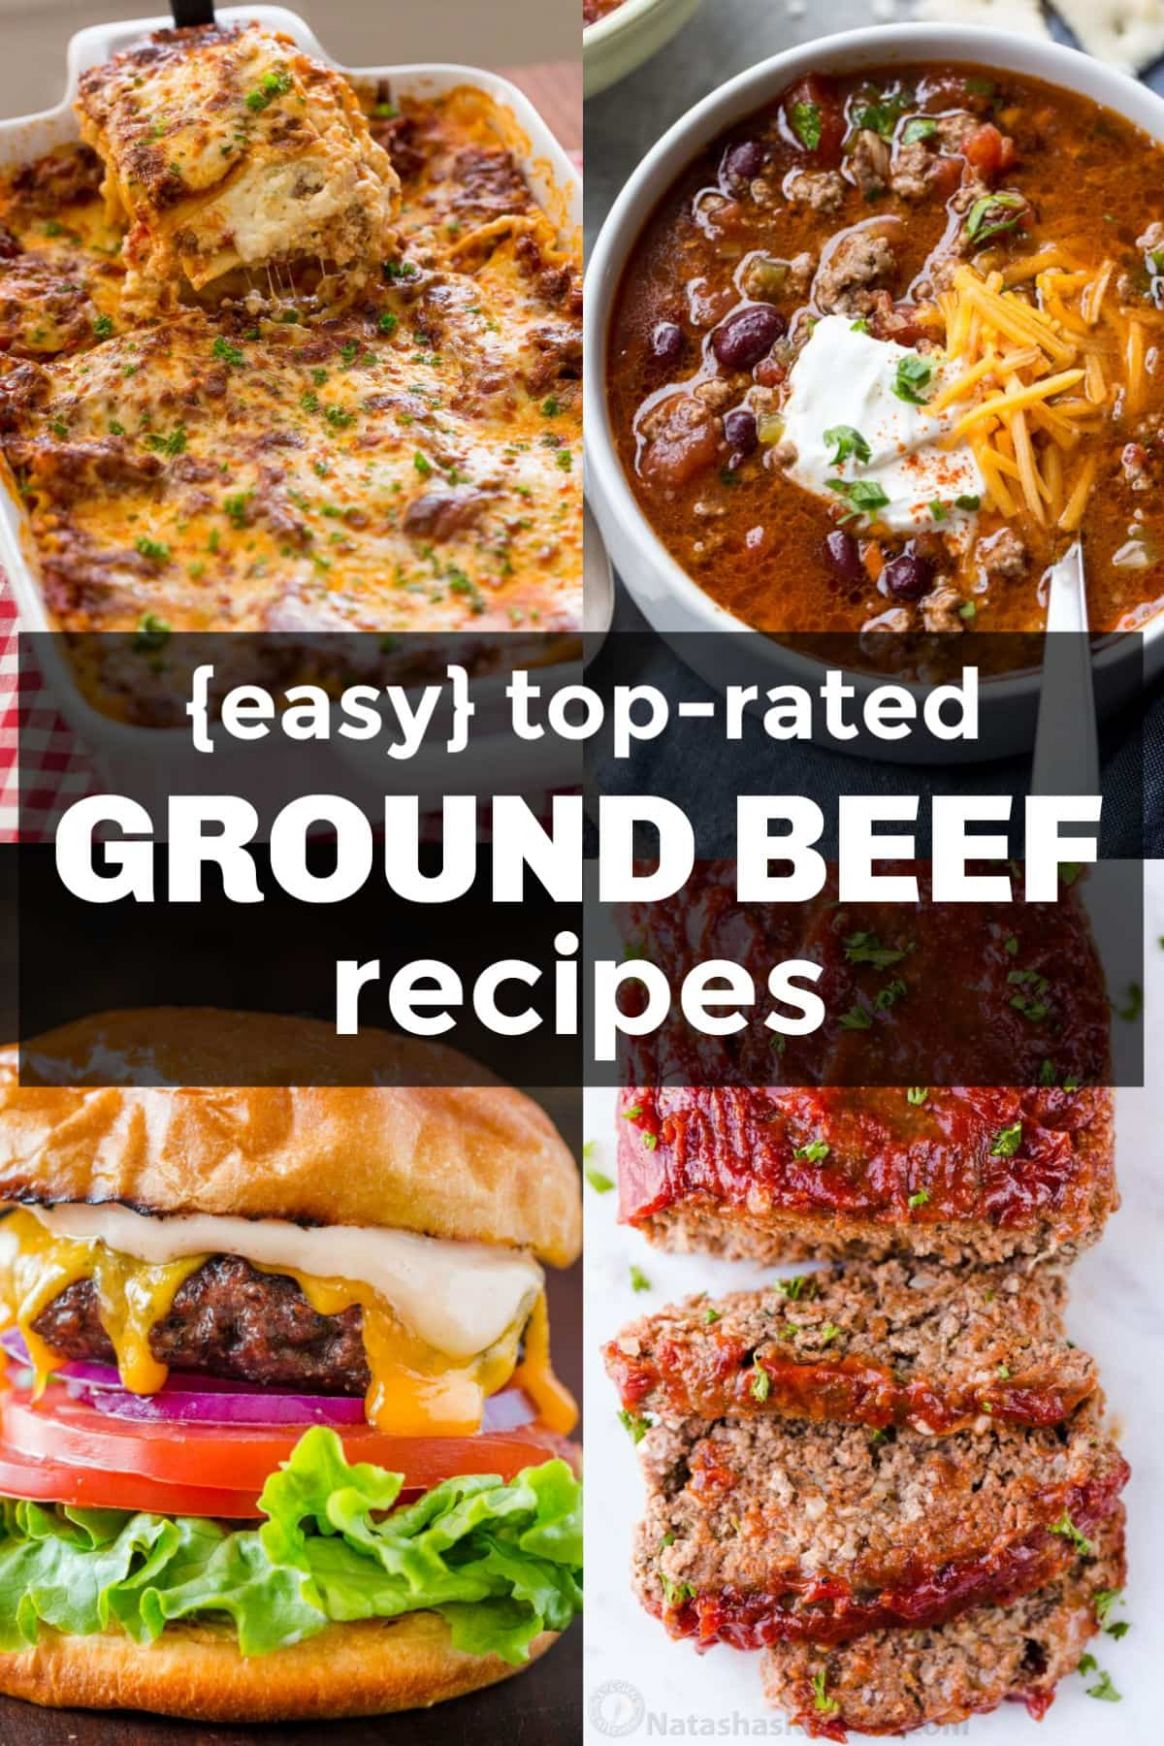 How to Cook Ground Beef for Ground Beef Recipes - Recipes Of Beef Dishes